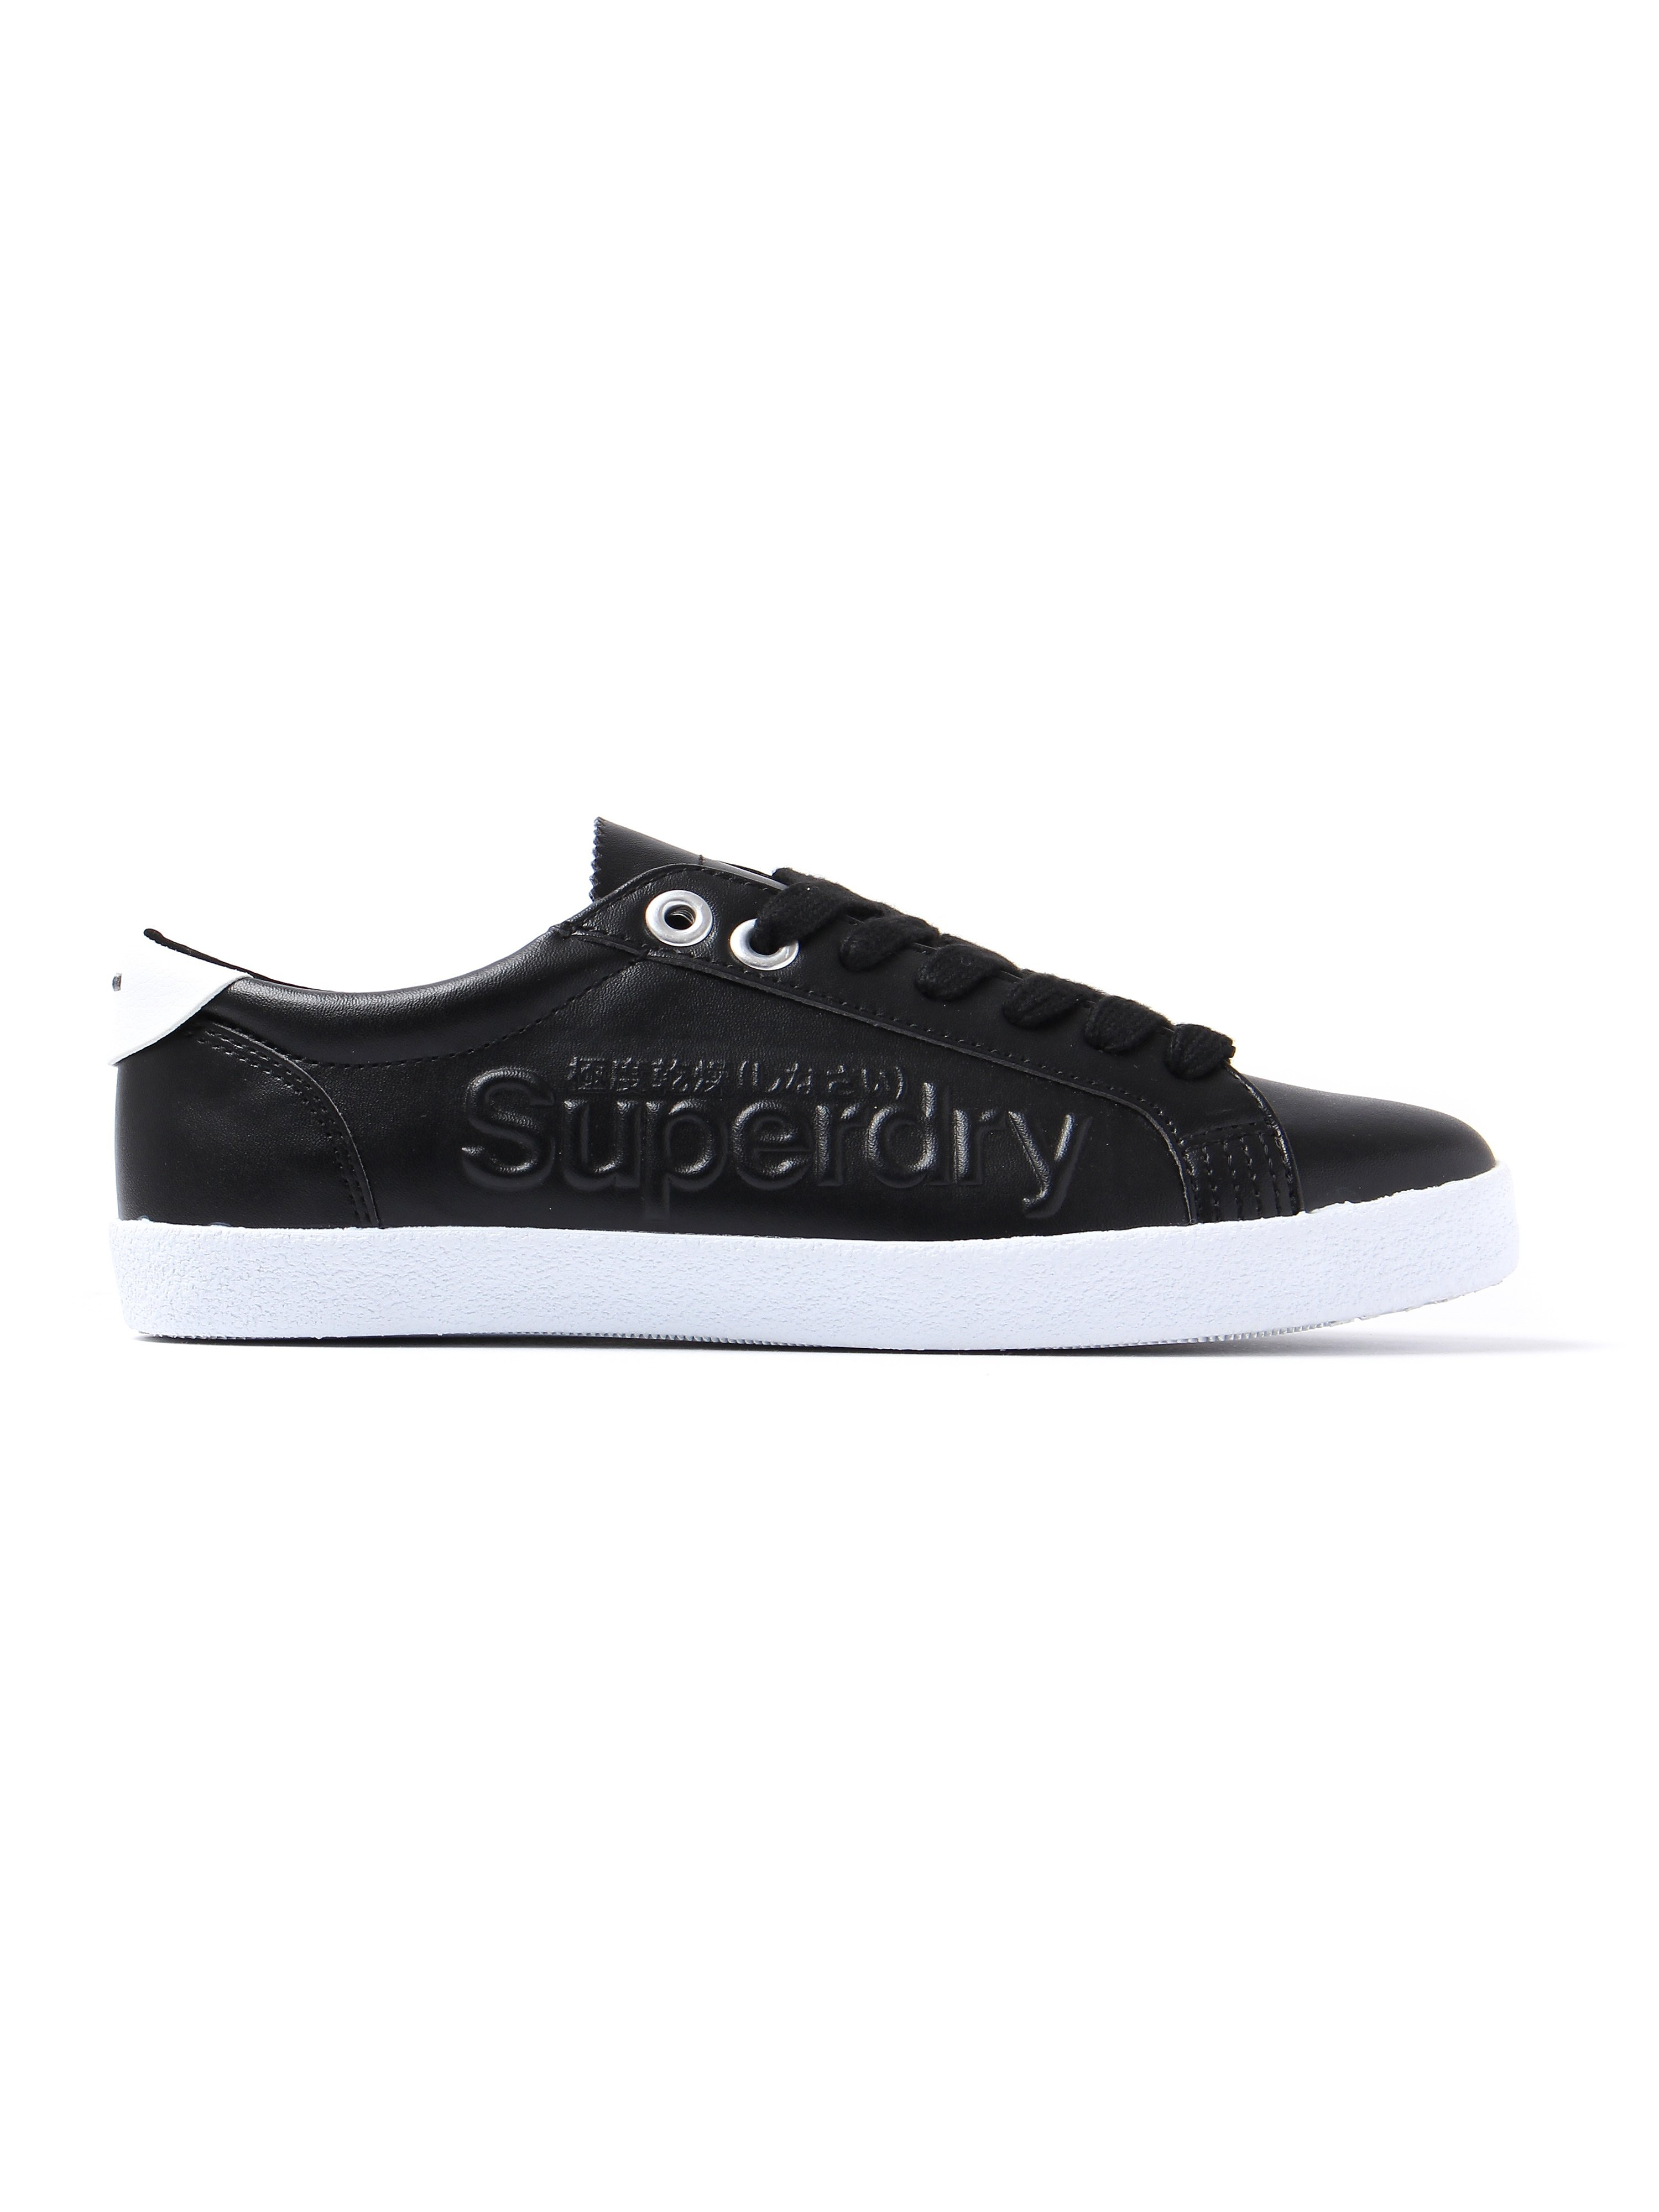 Superdry Women's Super Sleek Logo Leather Look Trainers